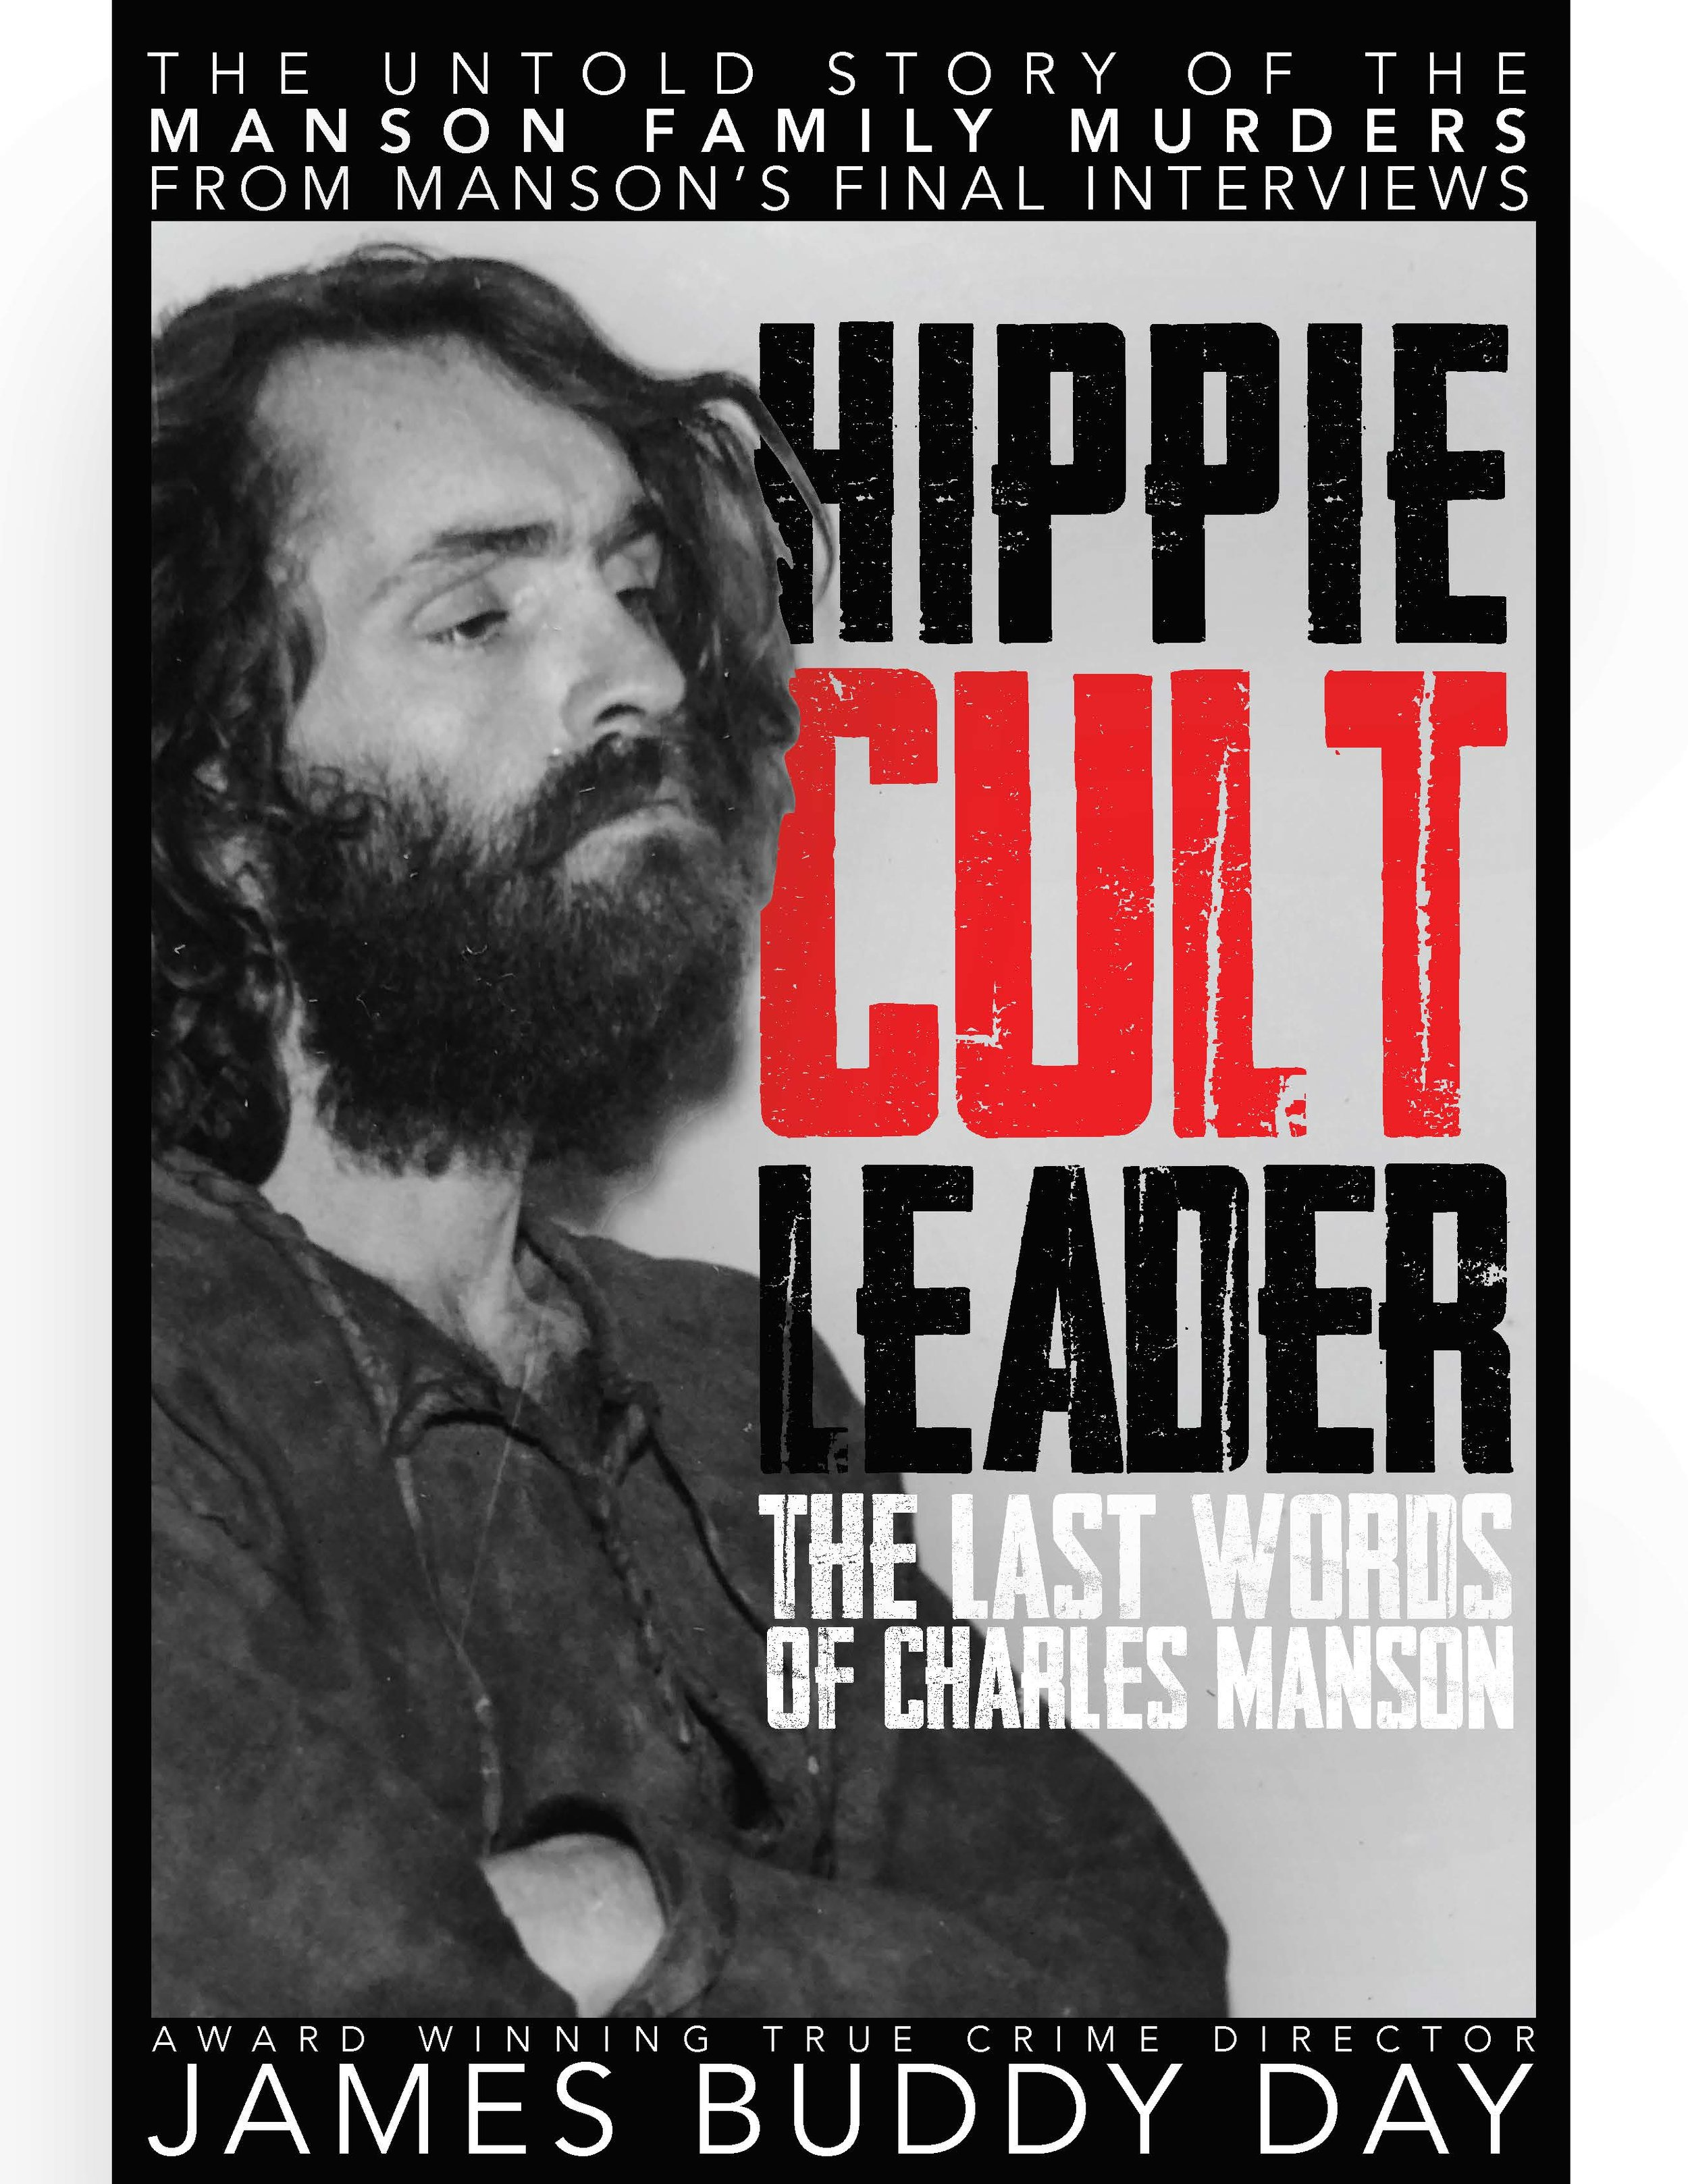 Entertainment Tonight and Hippie Cult Leader -